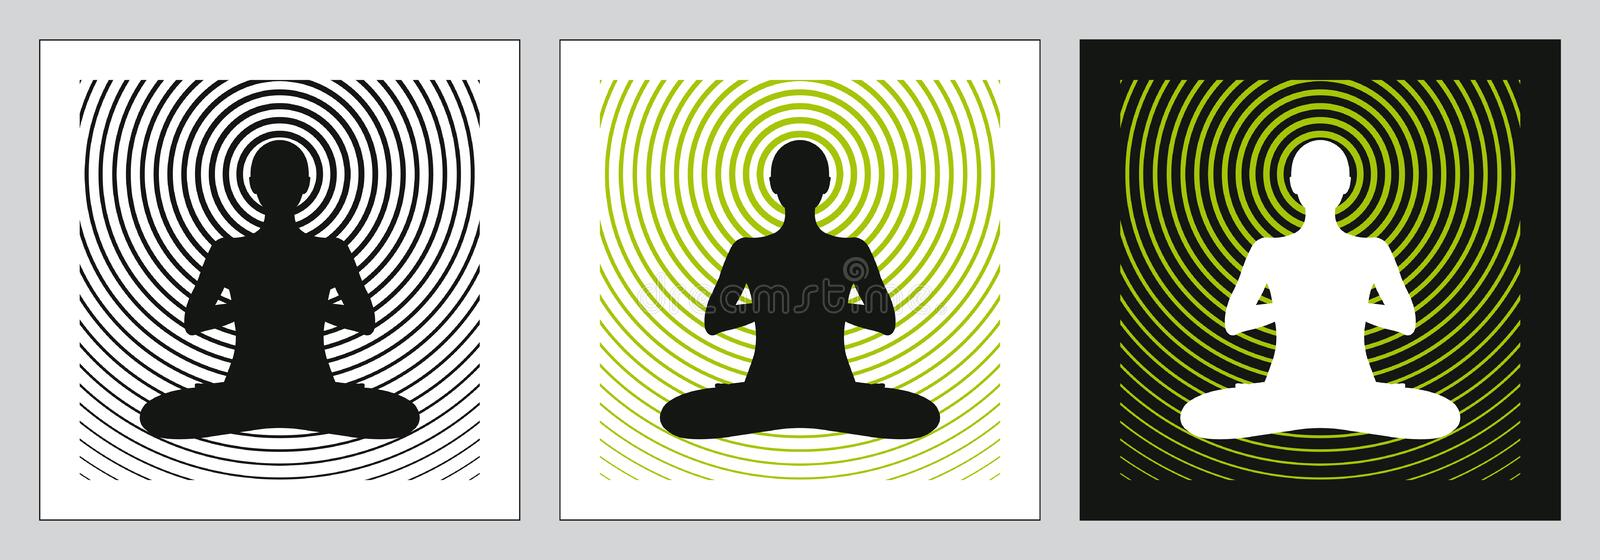 Yoga for Body, Mind & Soul royalty free illustration